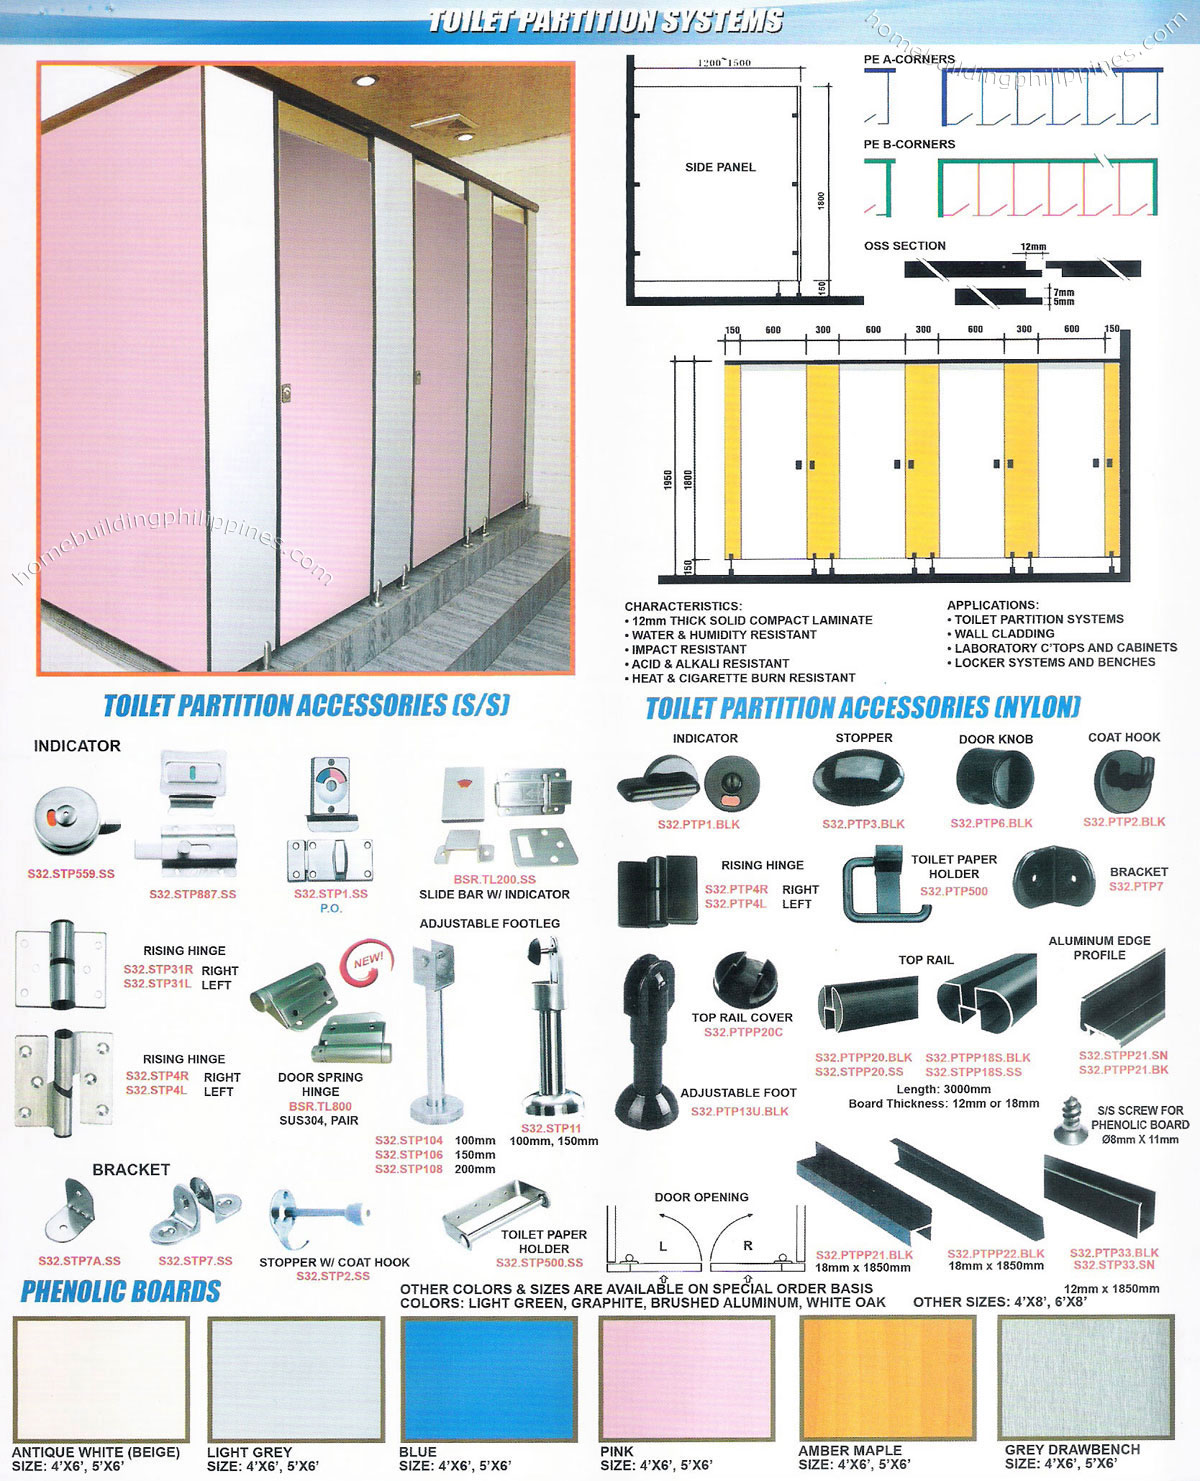 Bathroom Partitions Materials toilet partition systems & accessories philippines